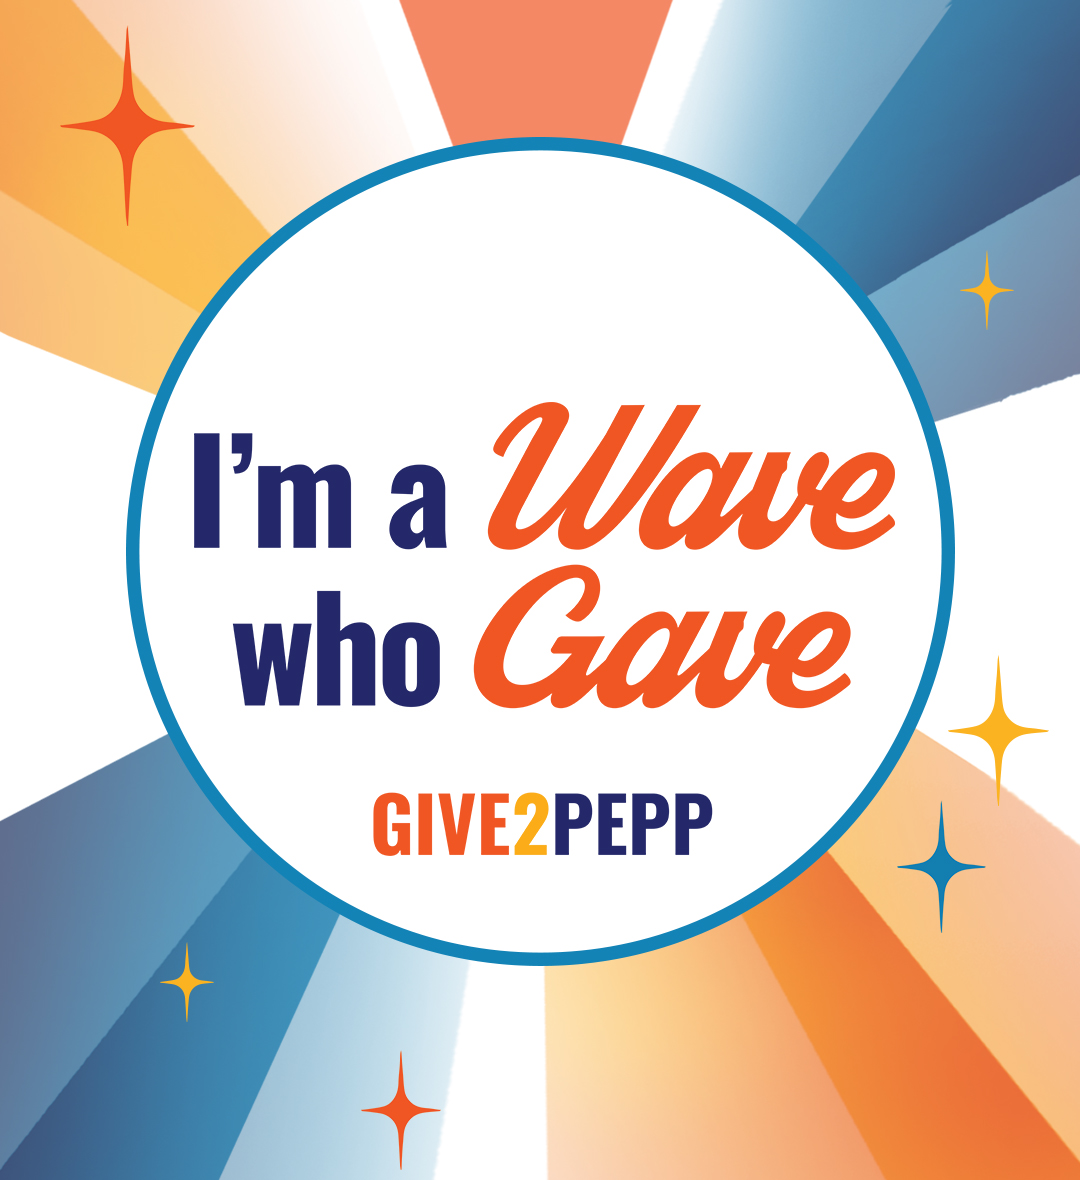 Give2Pepp Instagram - I'm a Wave Who Gave post